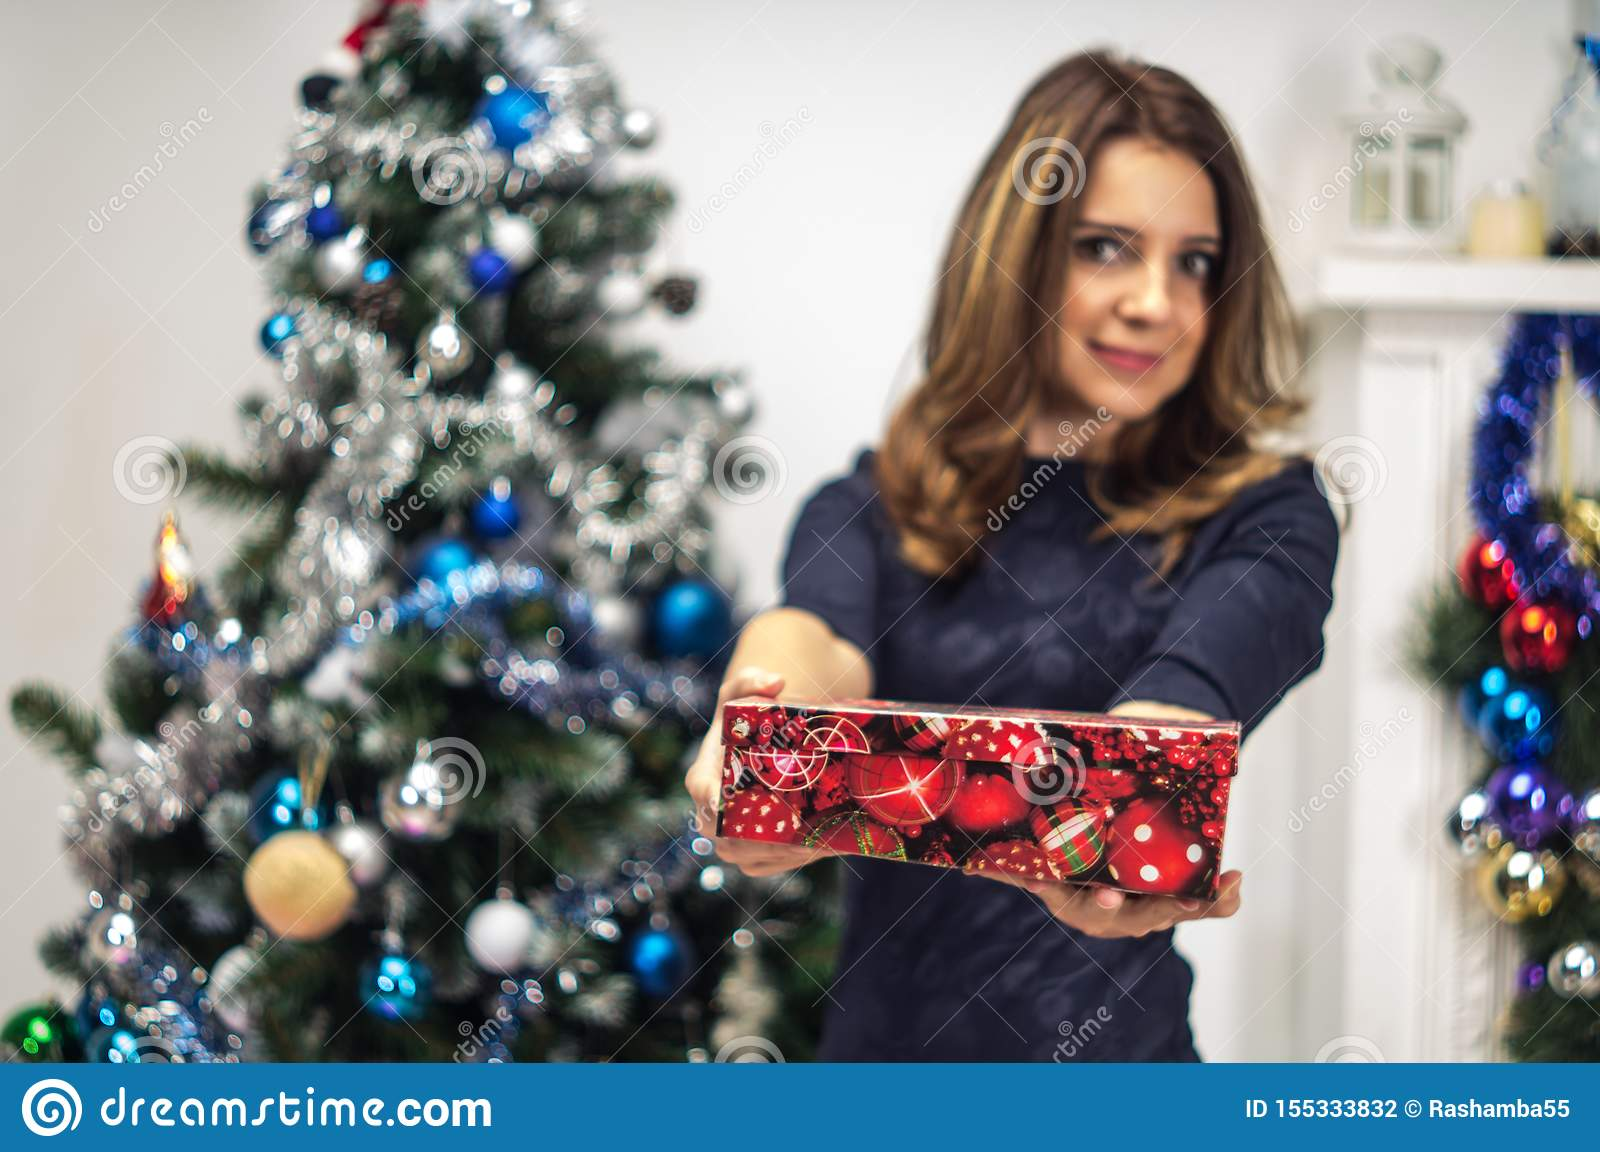 Portrait of a young, attractive and photogenic woman smiling as she holds up a box that she received for a gift. She is standing